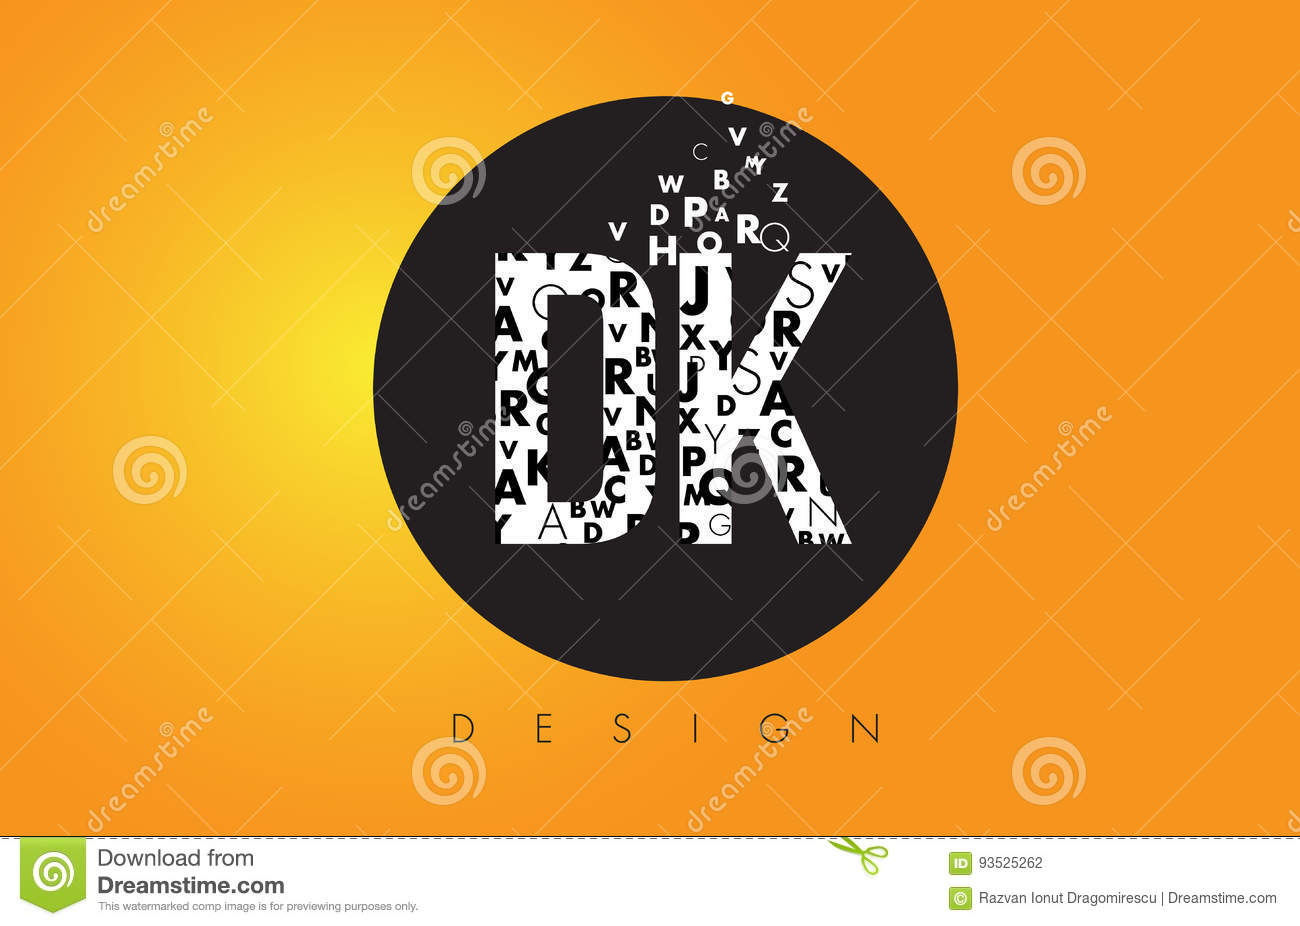 dk d k logo made of small letters with black circle and yellow b